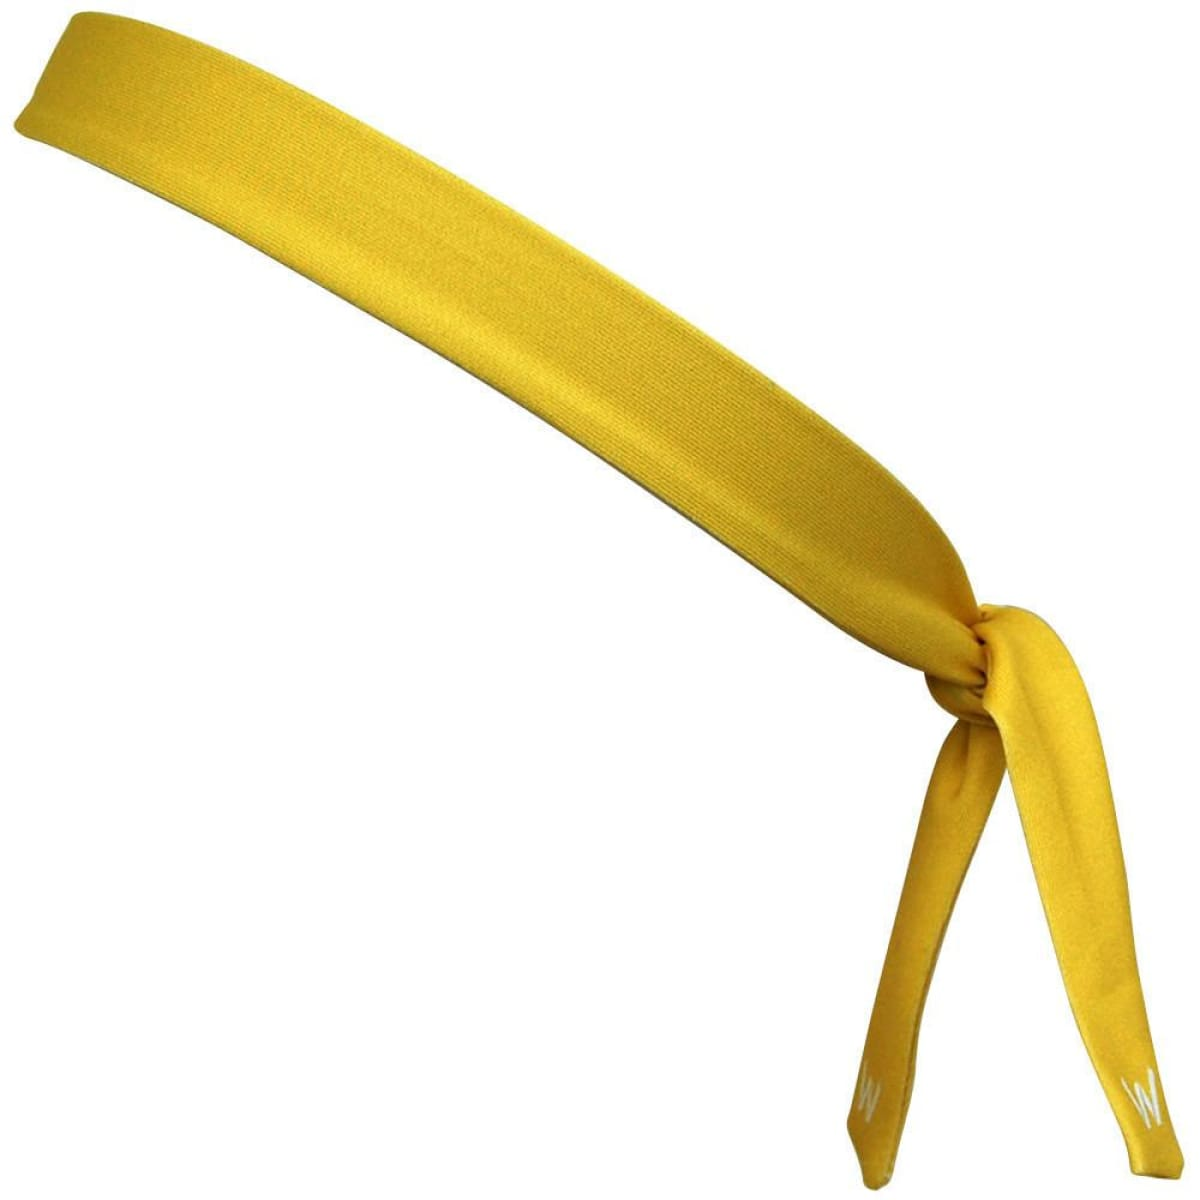 Canary Yellow Elastic Tie Skinny 1 Headband - Wicked Headbands